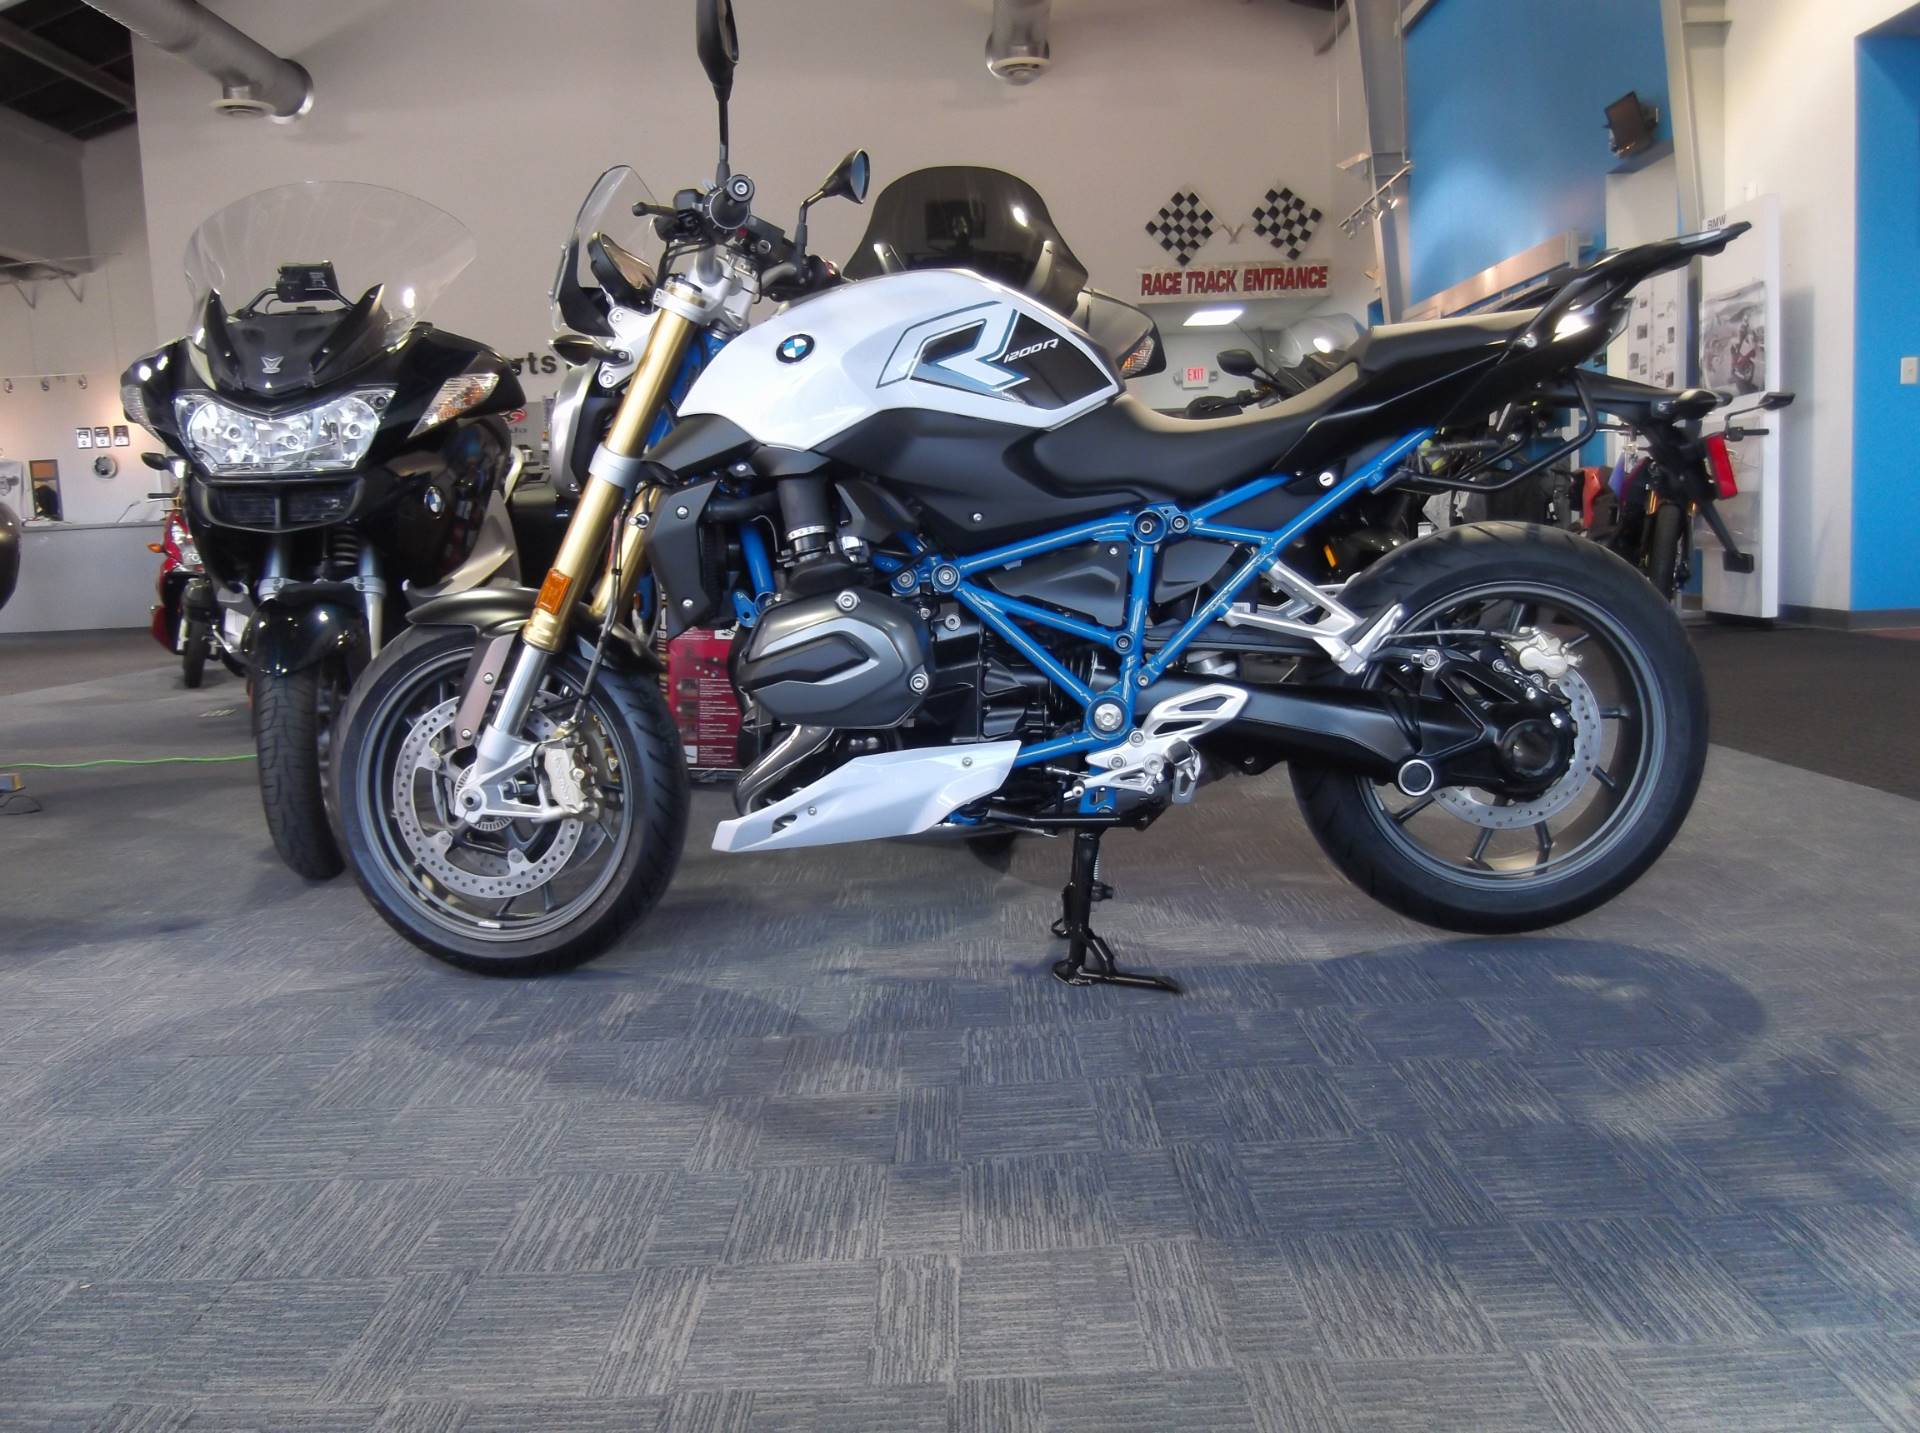 2017 BMW R 1200 R for sale 14605